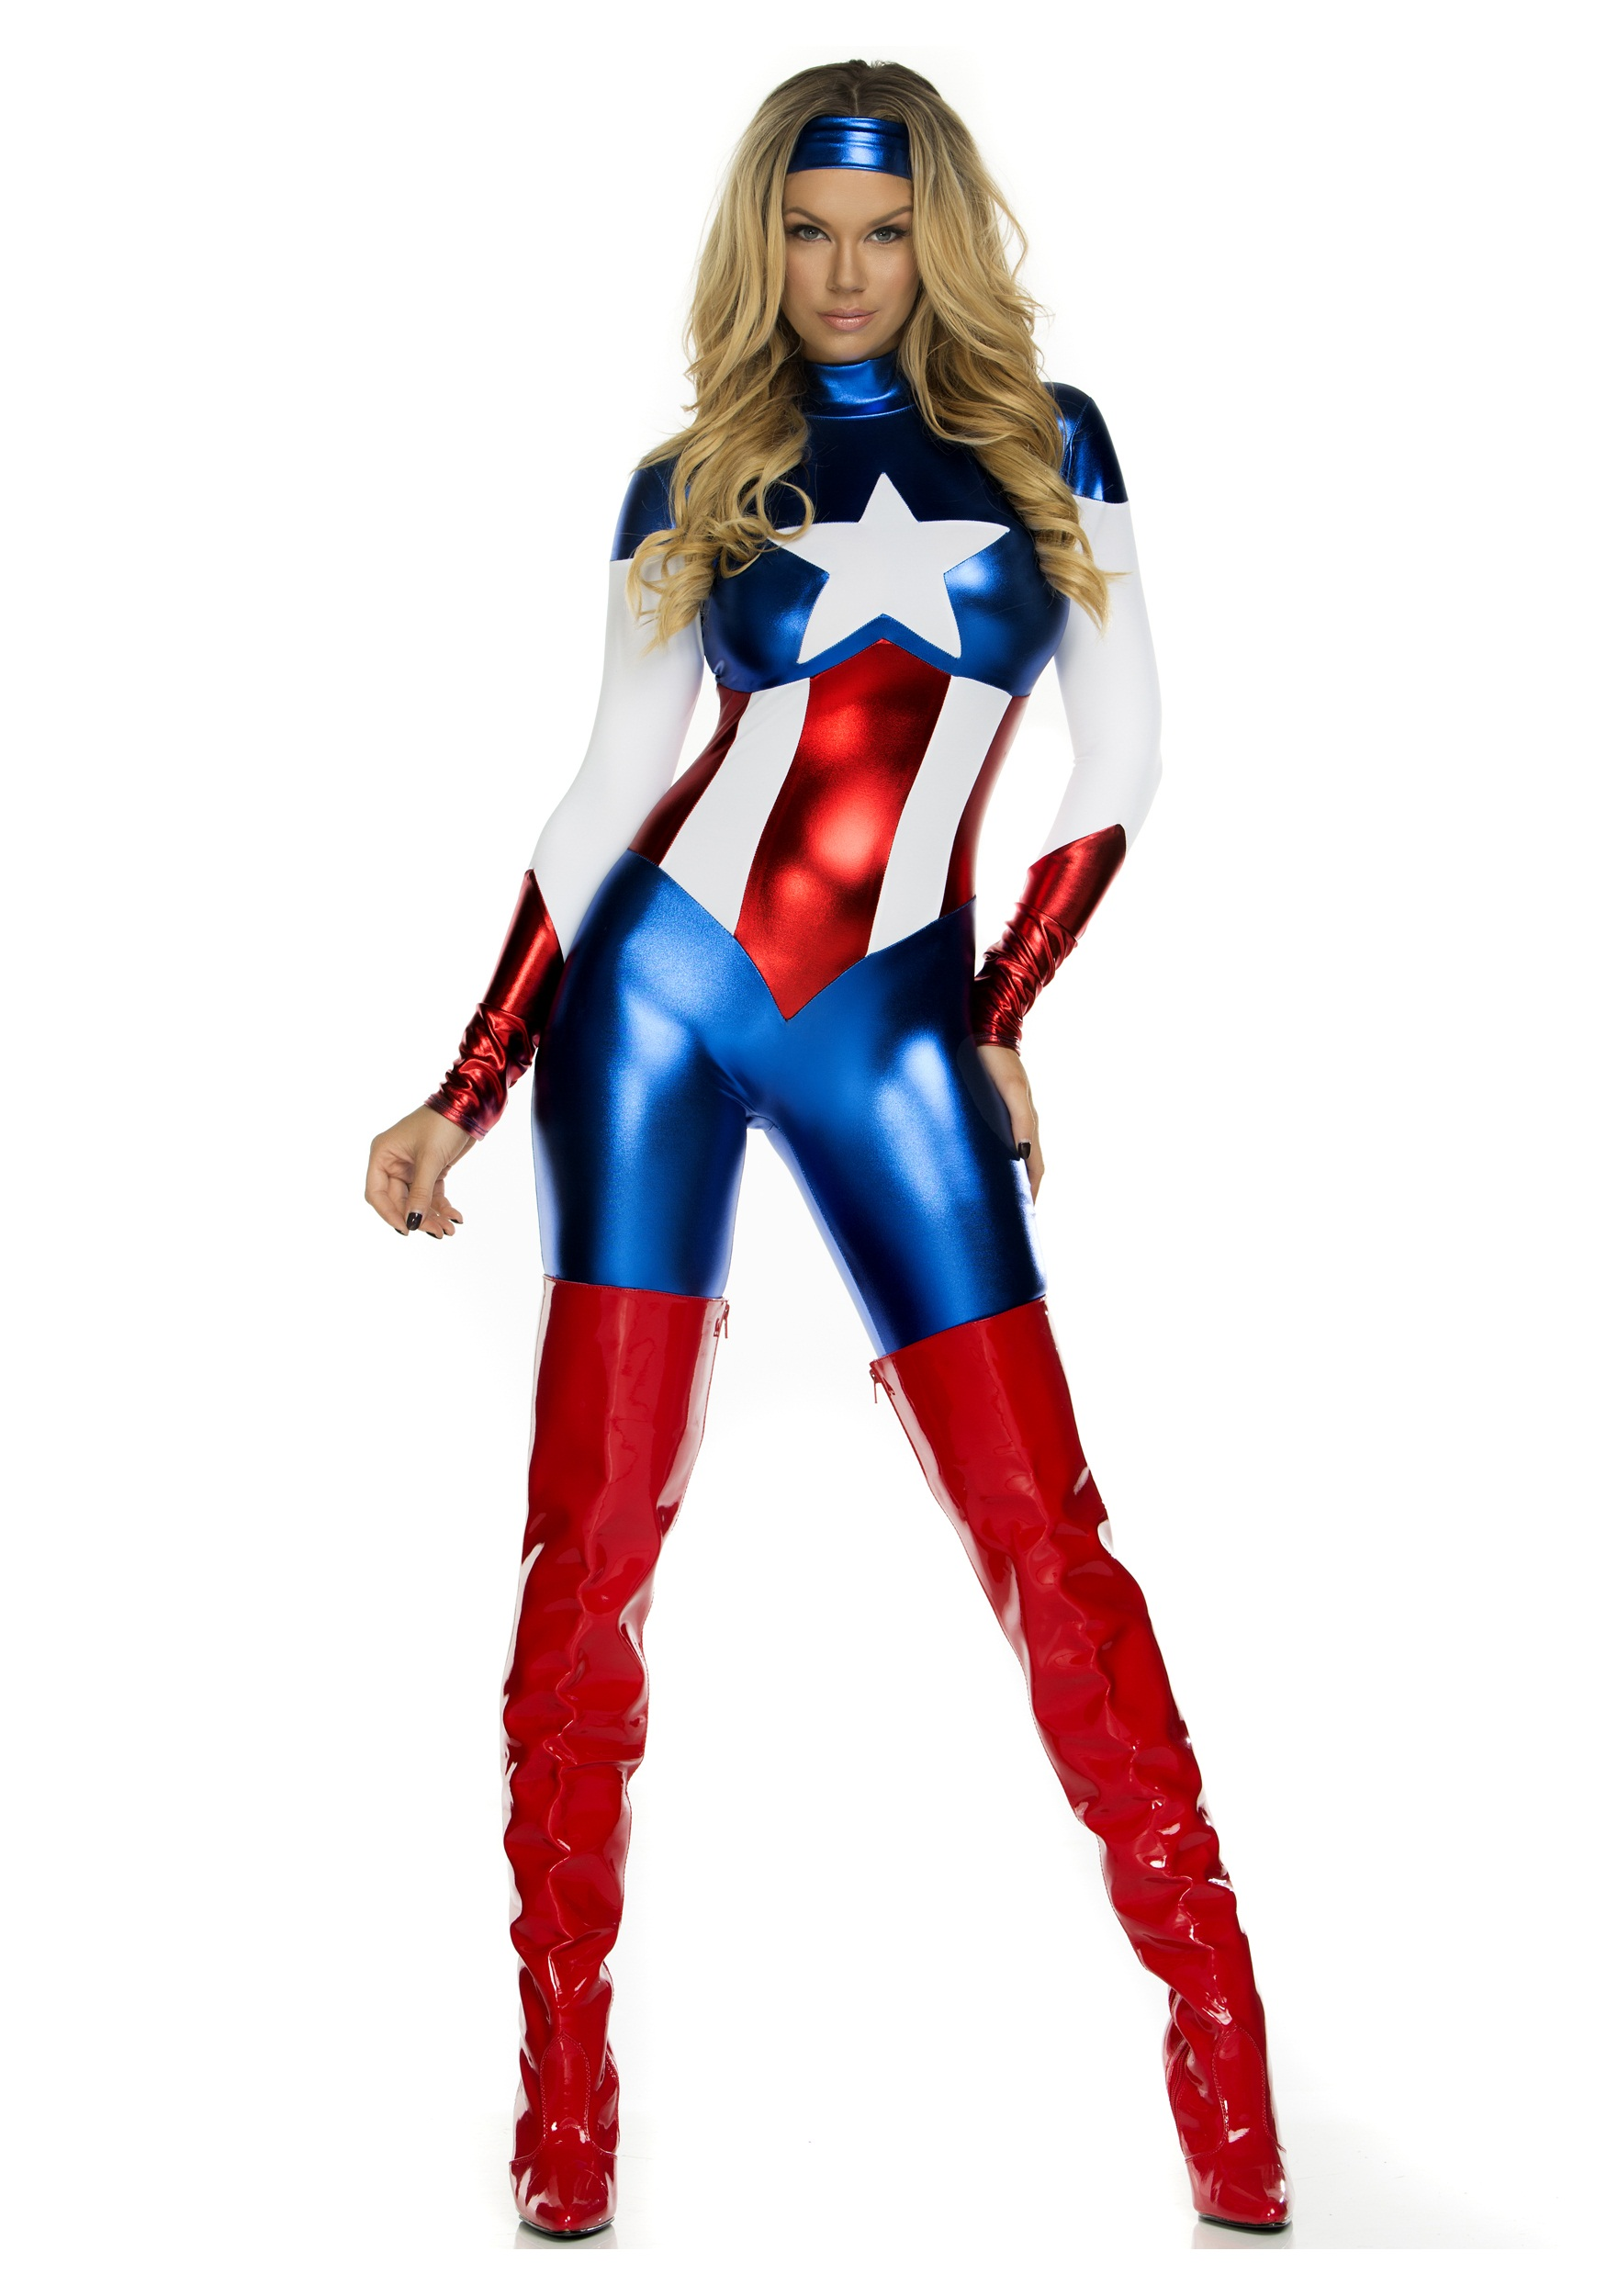 Superhero Halloween Costumes For Girls  newhairstylesformen2014.com